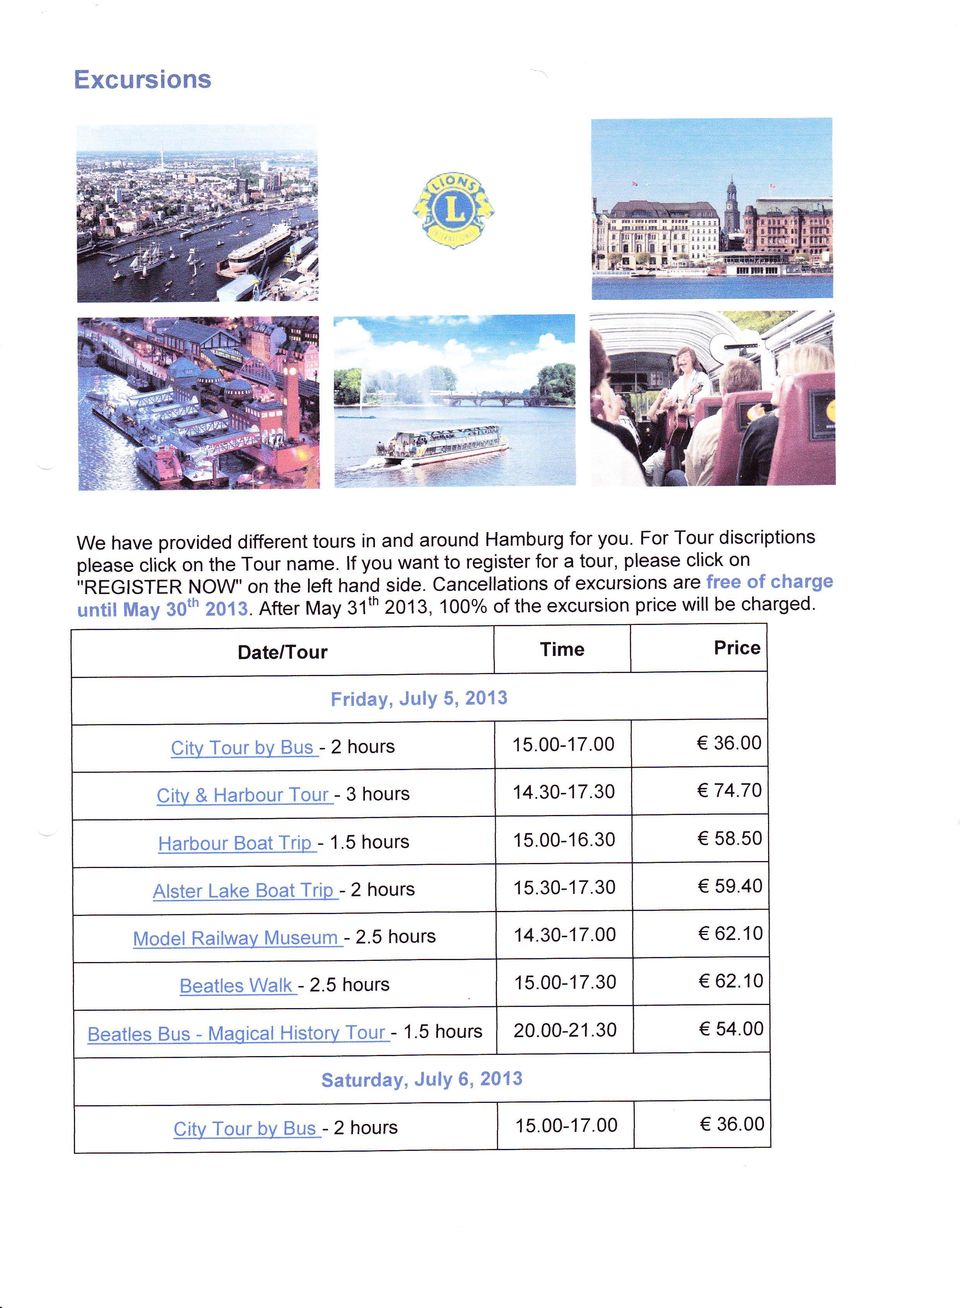 After May 31th 2A13,100% of the excursion price will be charged. Date/Tour Time Price Friday, July 5, 2013 Citv Tour bv Bus - 2 hours 15.00-17.00 36.00 Citv E Llarbour Tour - 3 hours 14.30-17.30 74.